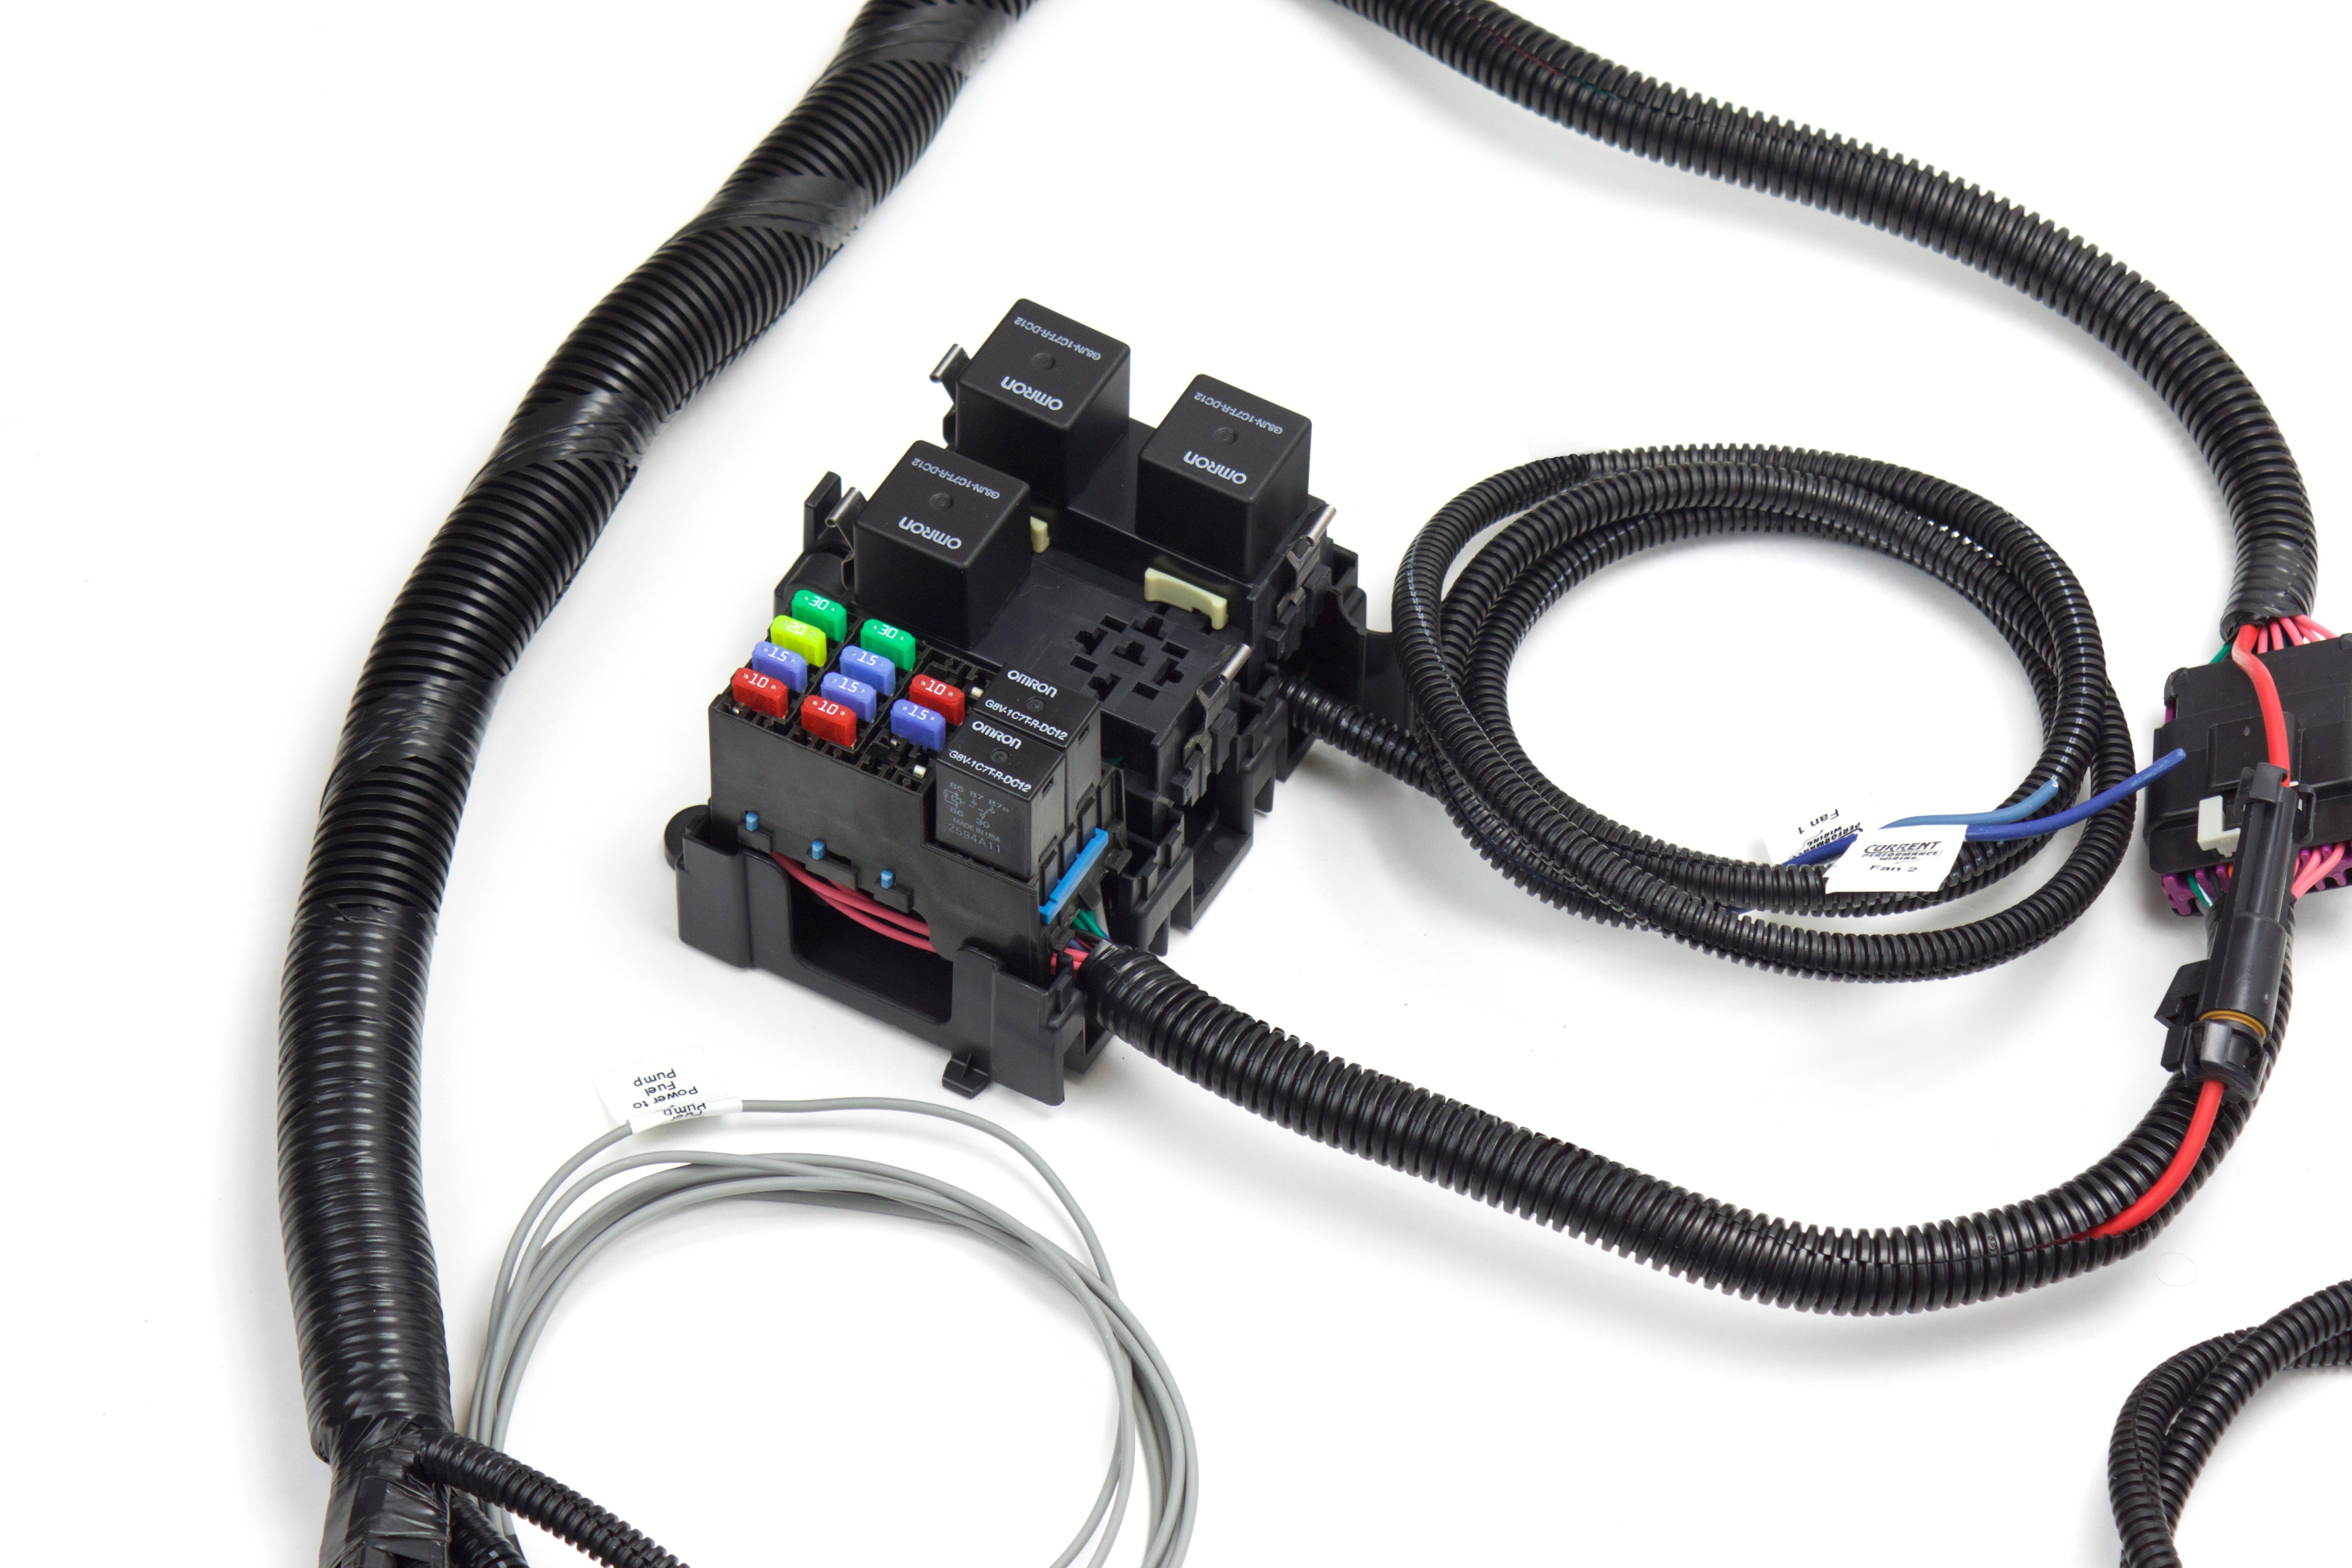 vortec stand alone engine harness cable throttle current rh currentperformance com GM Wiring Harness Connectors Buick Engine Wiring Harness